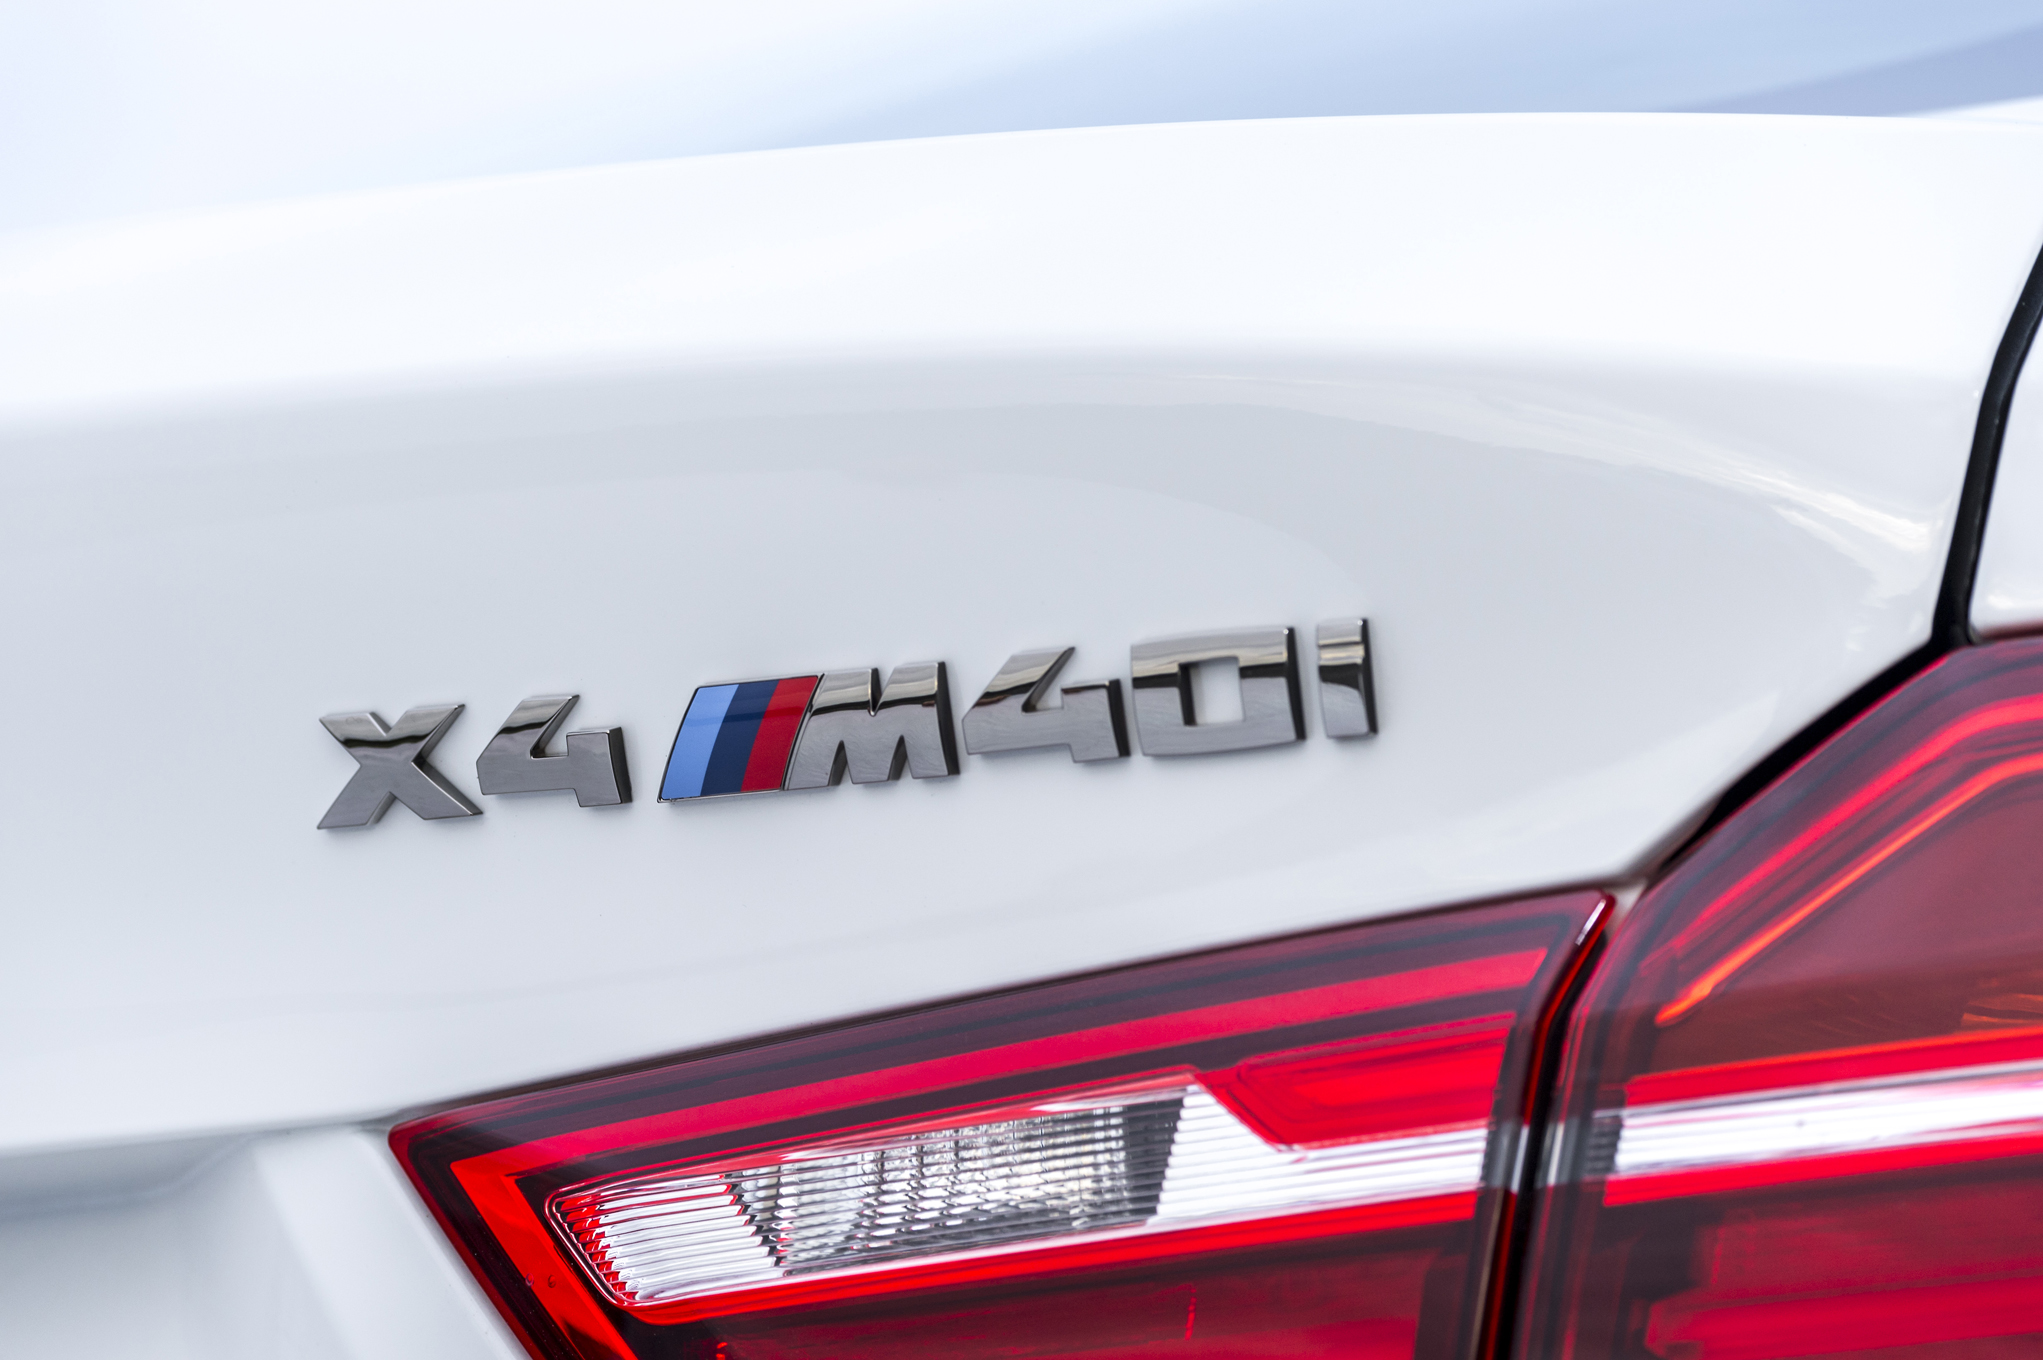 01-2016-BMW-X4-M40i-rear-badge.jpg